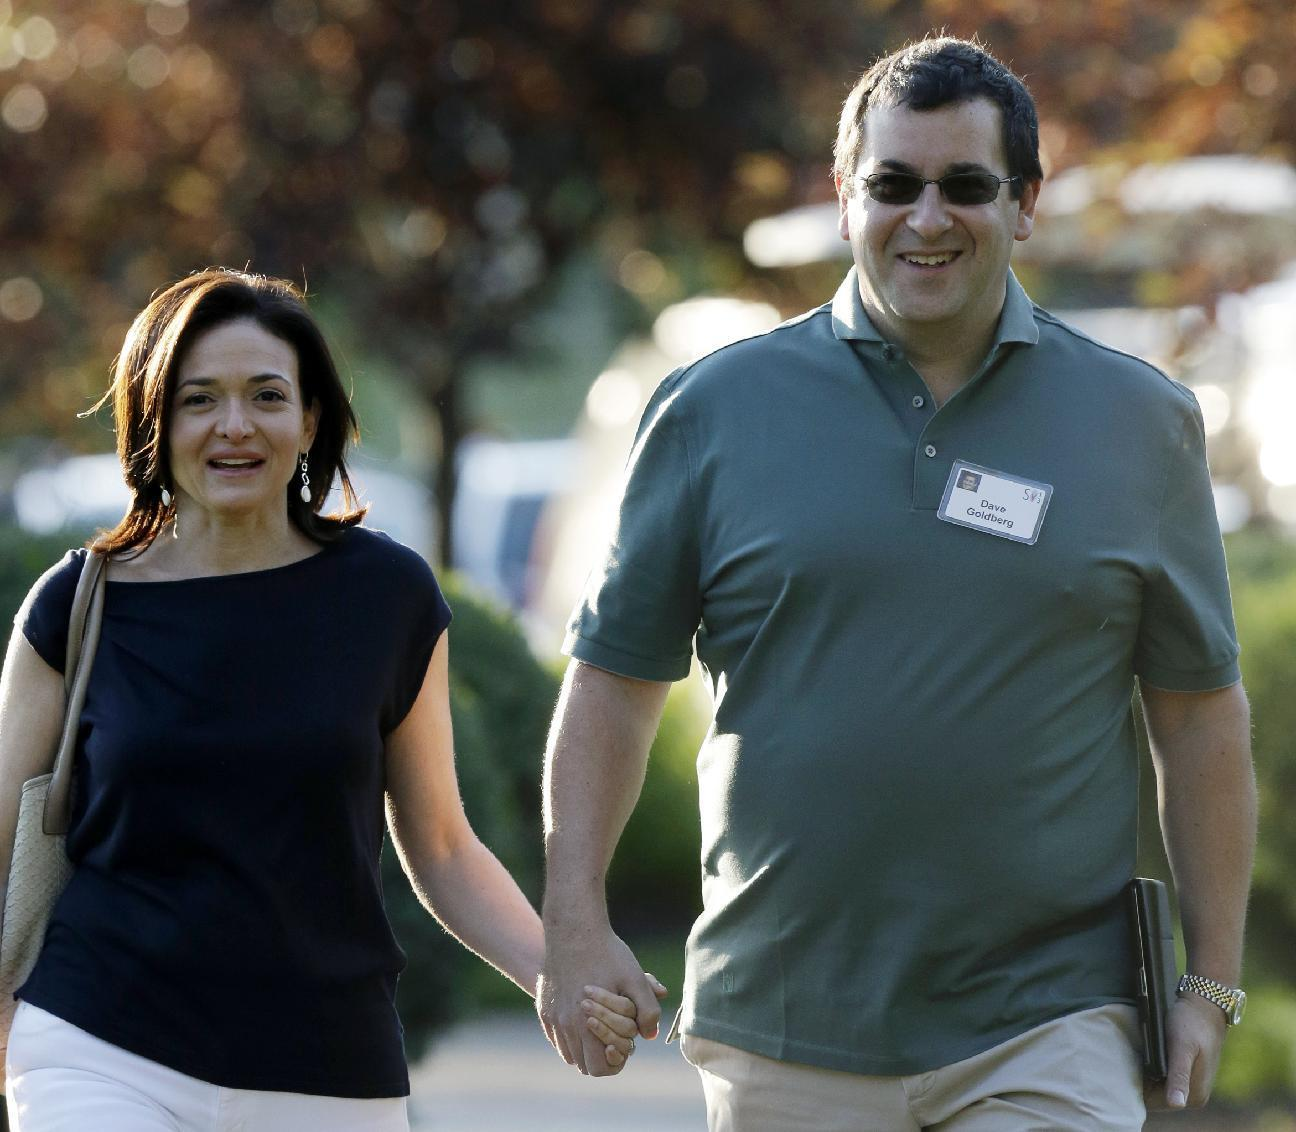 SurveyMonkey CEO died of head trauma in exercise accident